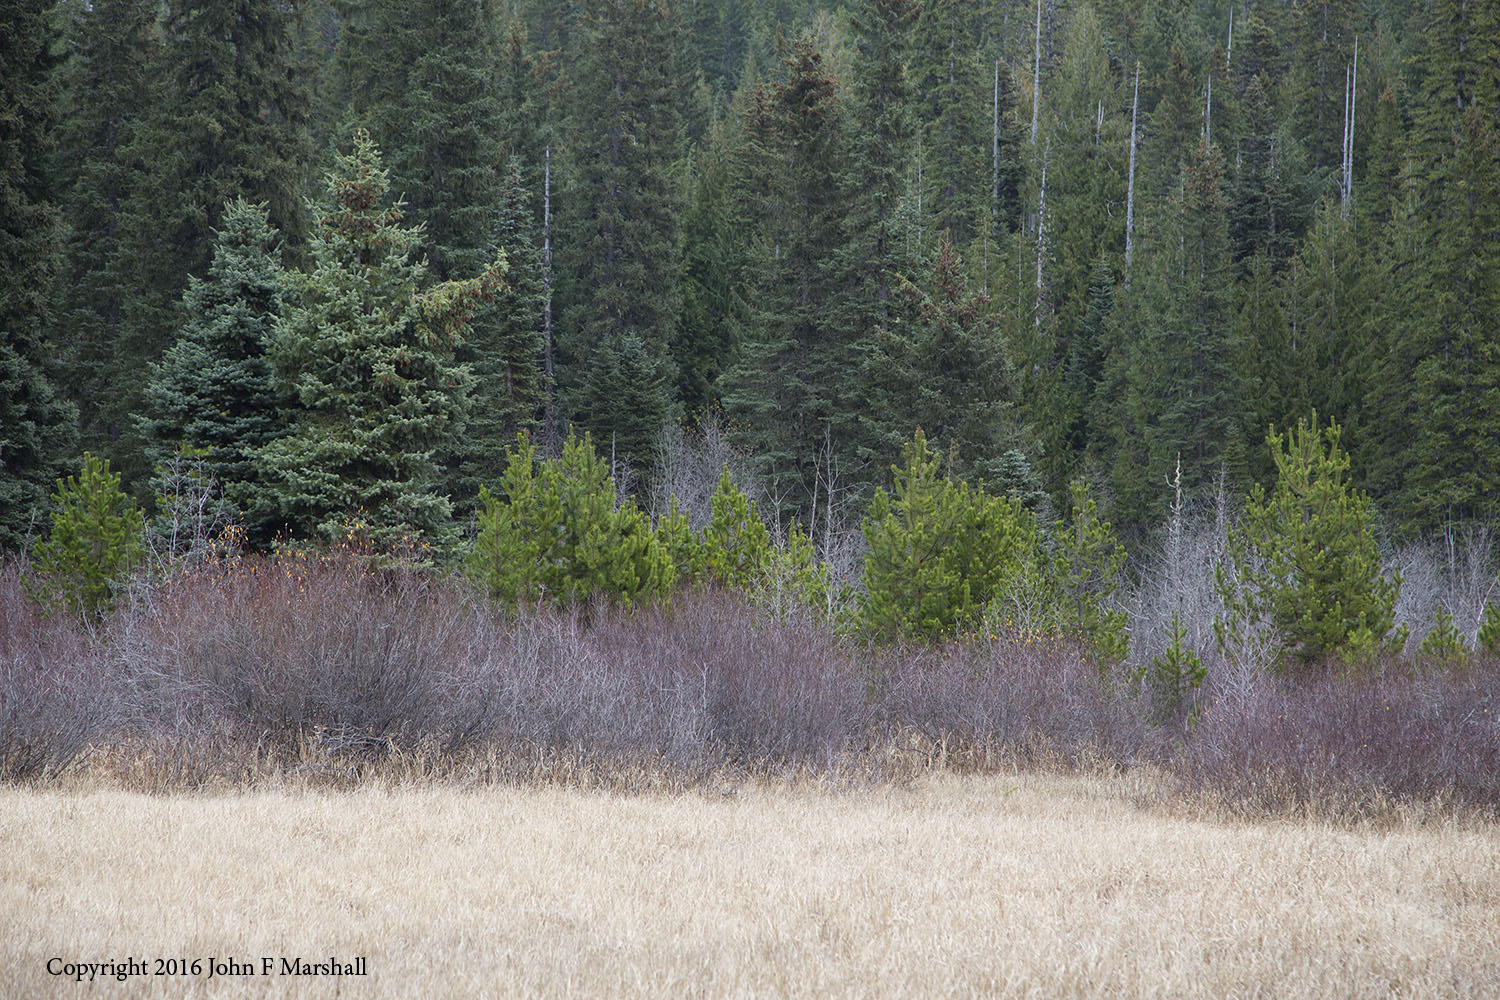 Lodgepole pine is able to grow in both well drained soils, and swampy ground.  The yellow-green trees seen here are lodgepole pines growing besides willow, and Engelmann-spruce at Summit Meadows on the Mt. Hood National Forest, Oregon.   Photograph taken in late fall.